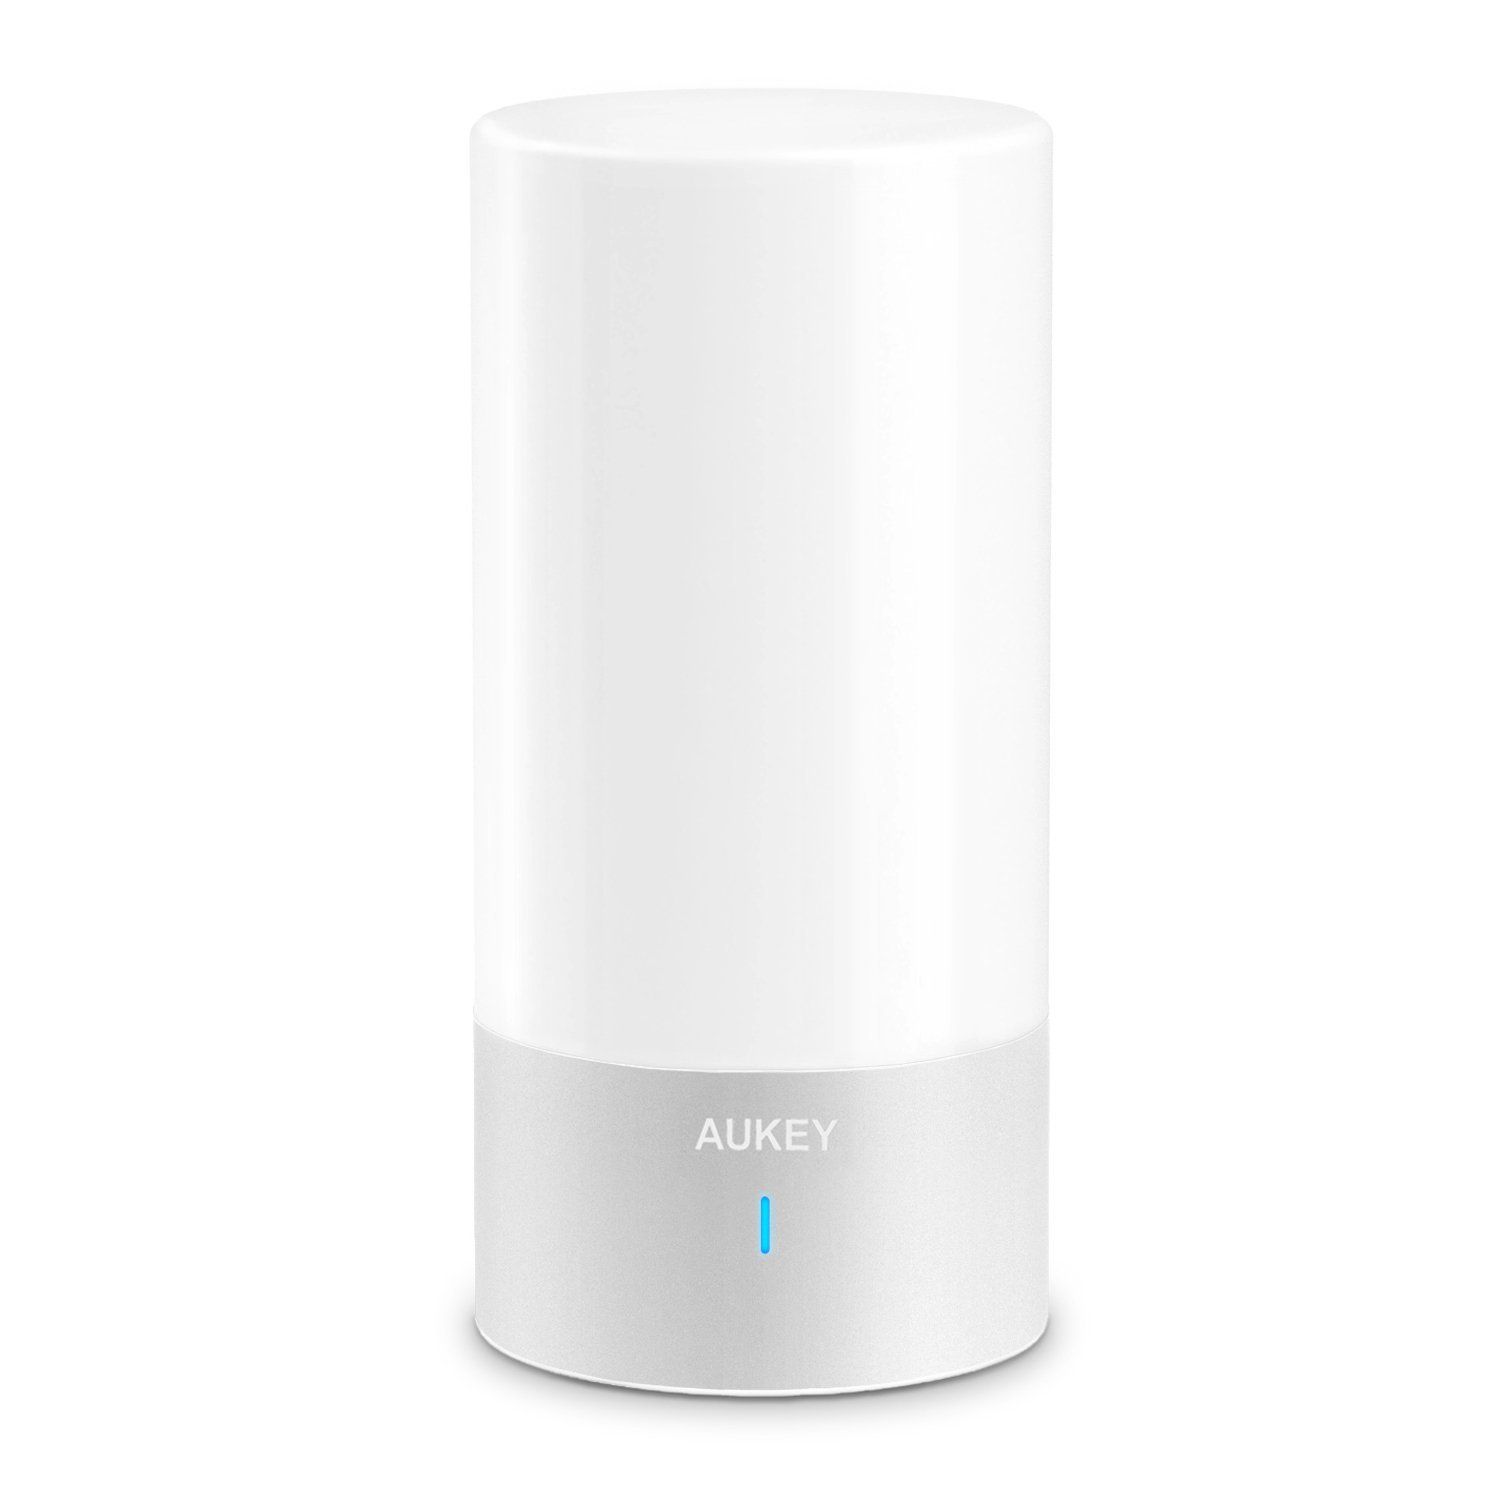 Aukey Led Atmosphere Lamp Bedside Lamp Touch Dimmable Amazon Co Uk Electronics Bedside Lamp Light Fixtures Bedroom Ceiling Touch Lamp